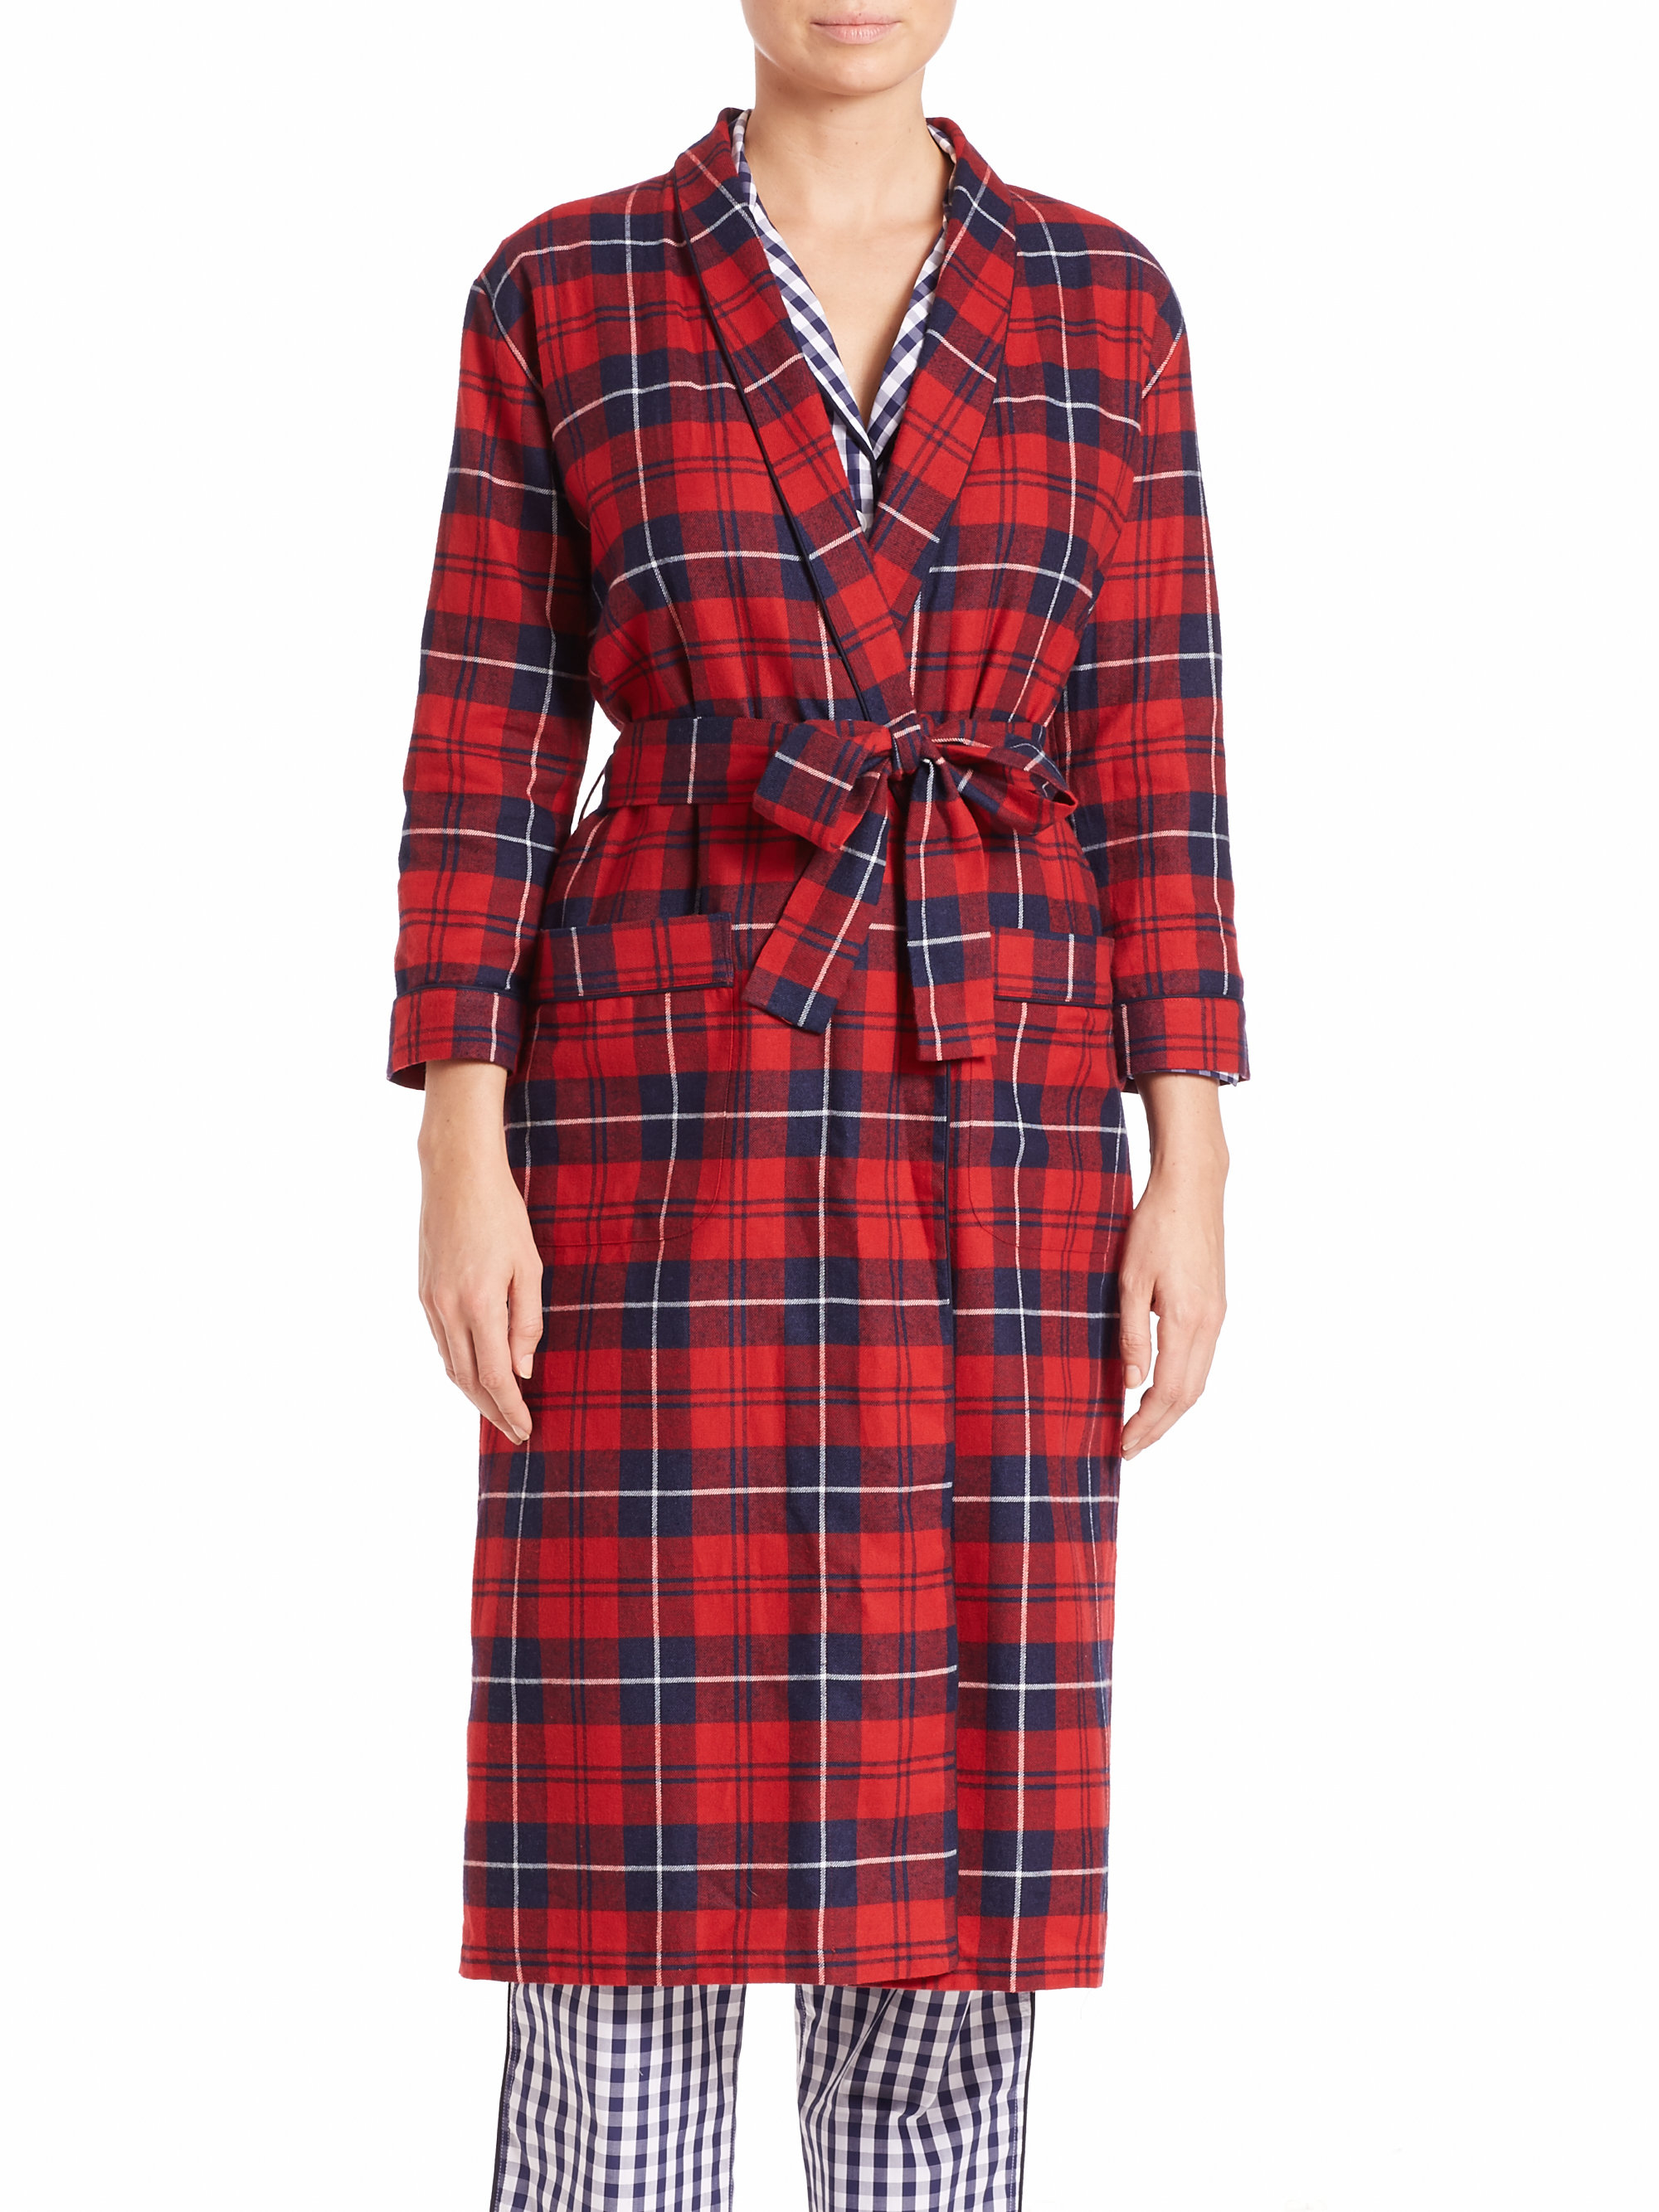 Lyst - Sleepy Jones Marianne Long Plaid Flannel Robe in Red